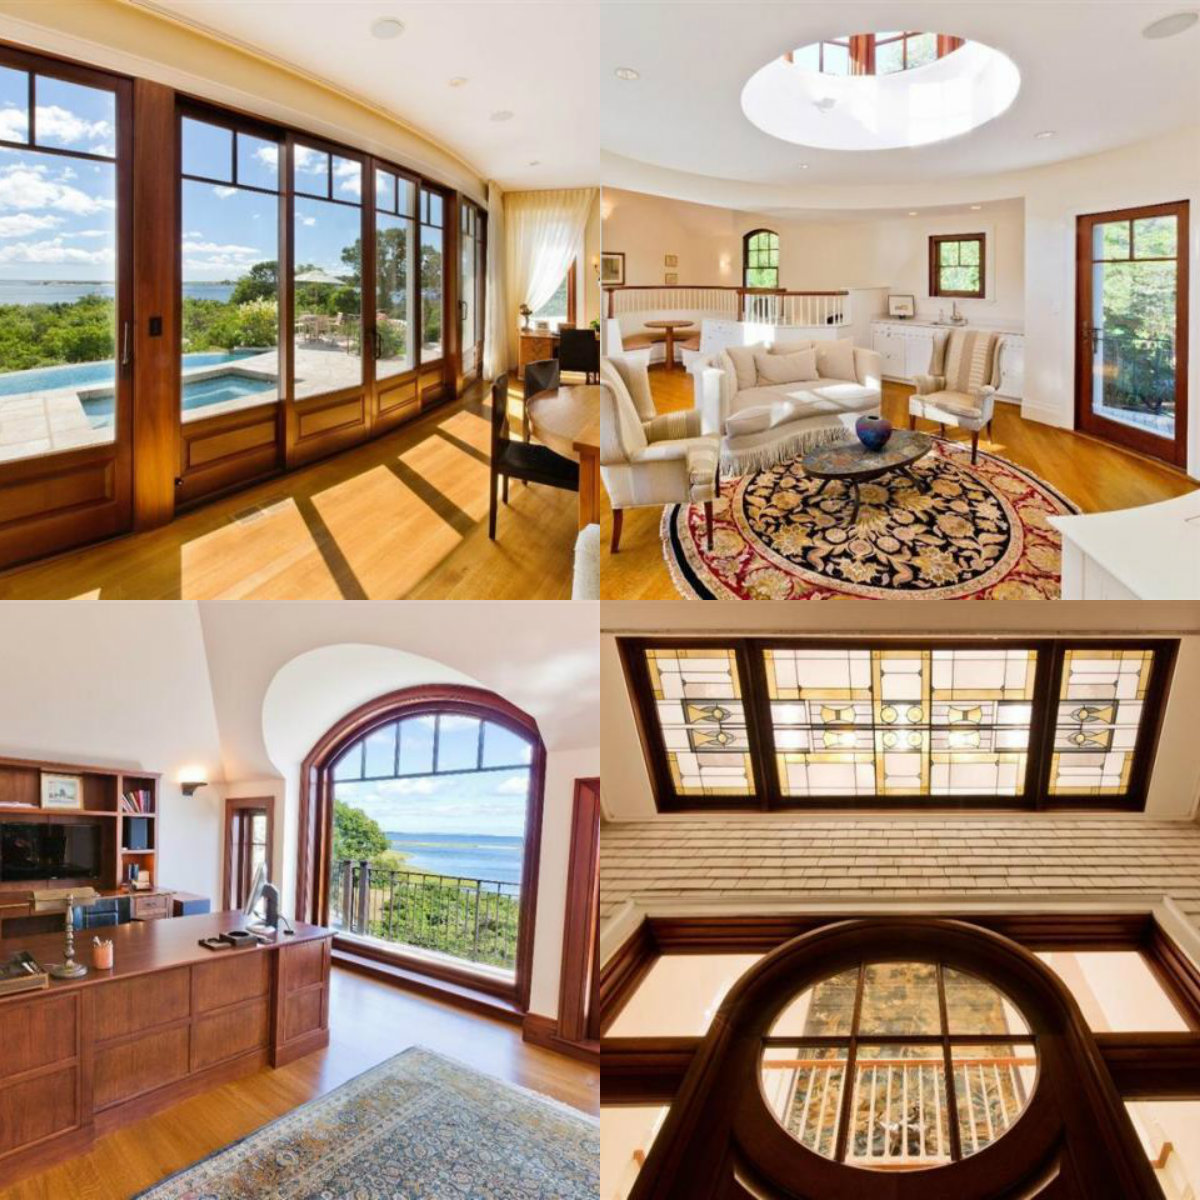 Images of rooms with windows in 461 Main Street in Osterville on Cape Cod MA